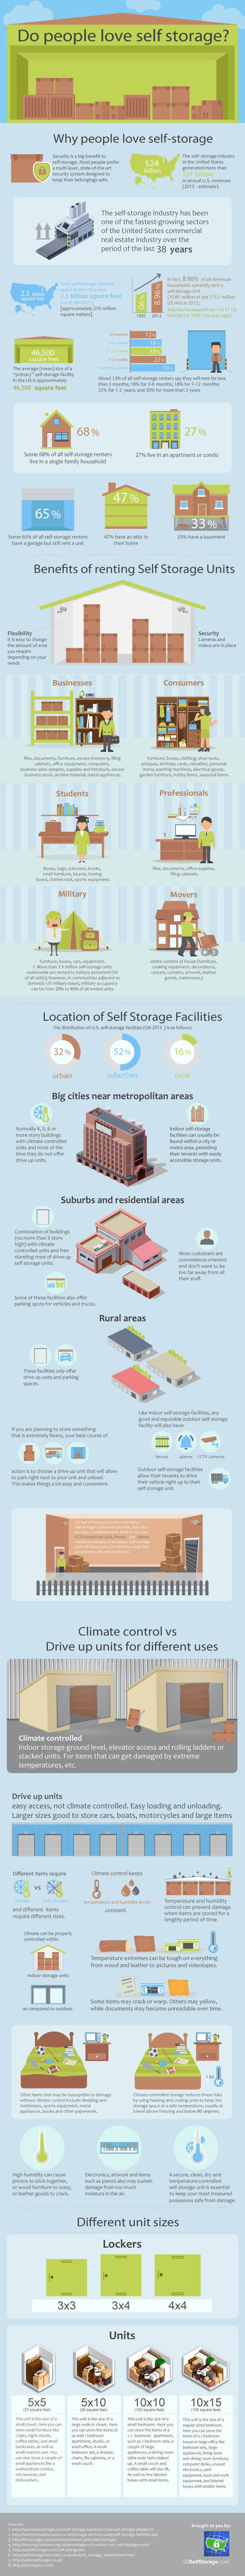 Do People Love Self Storage This Infographic Ilrates Some Arguments Why The Industry Has Been One Of Fastest